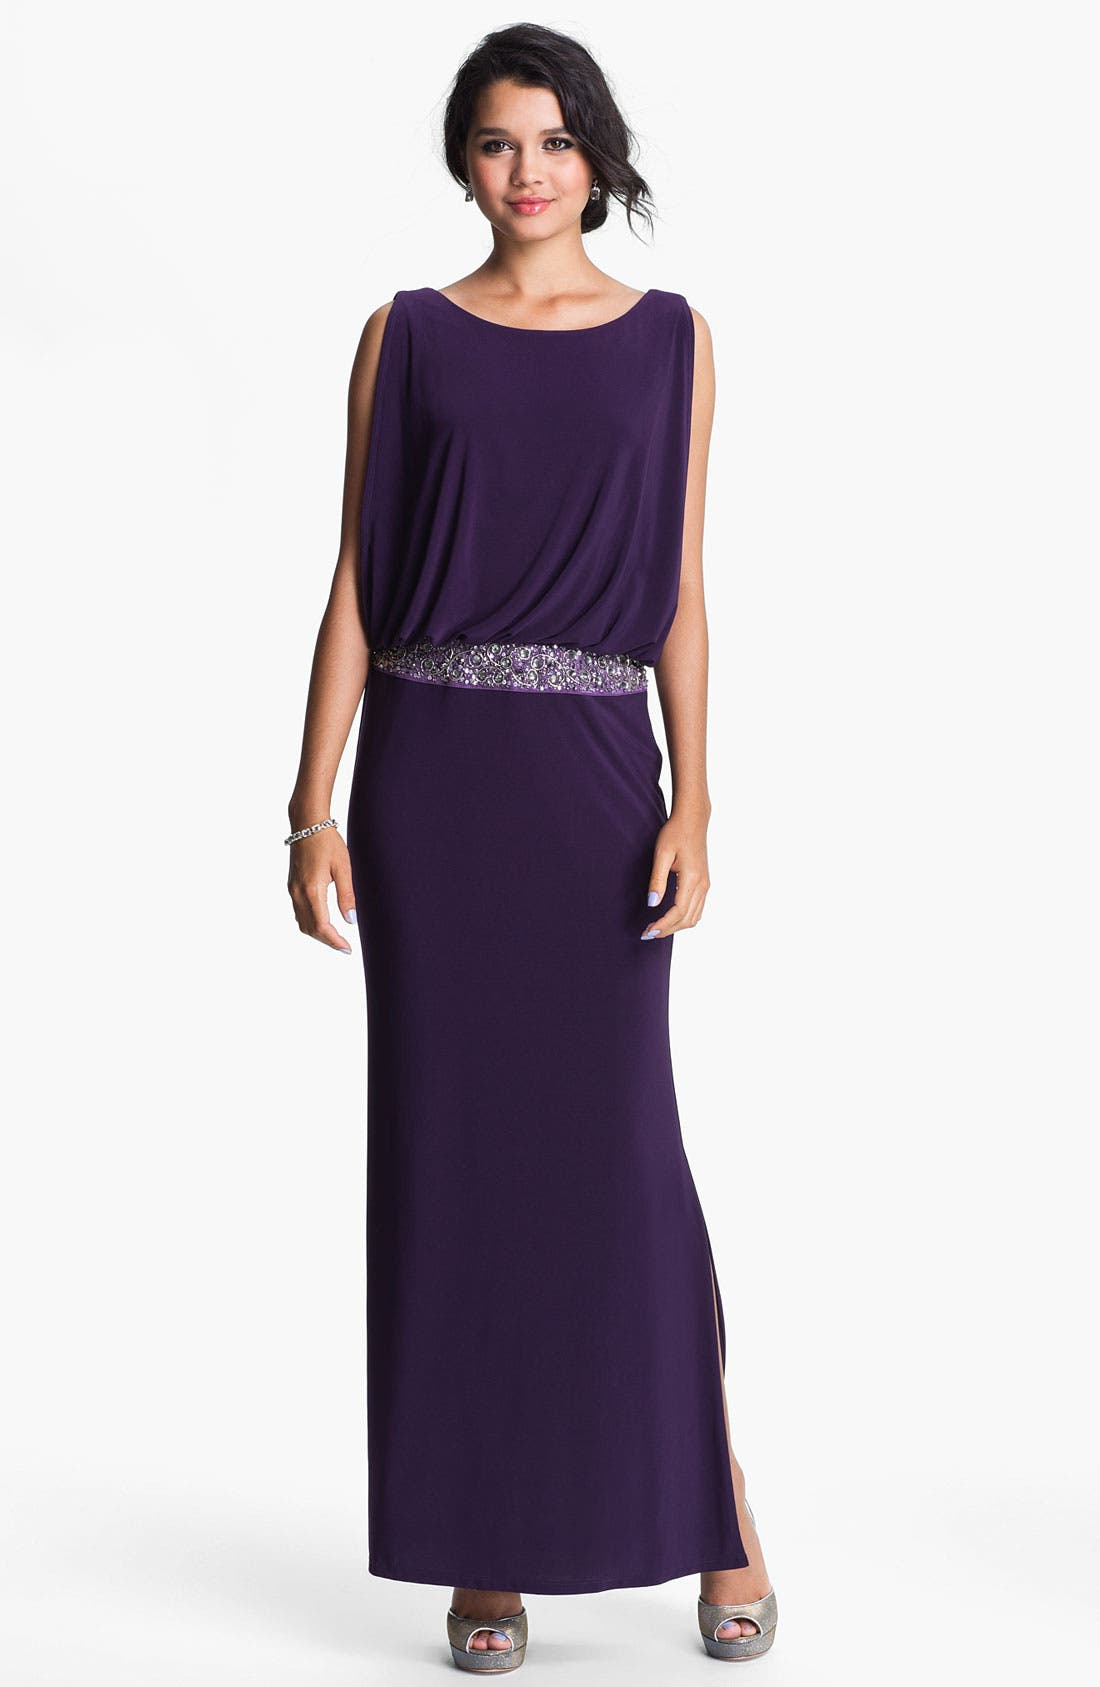 Main Image - JS Boutique Back Keyhole Embellished Blouson Jersey Gown